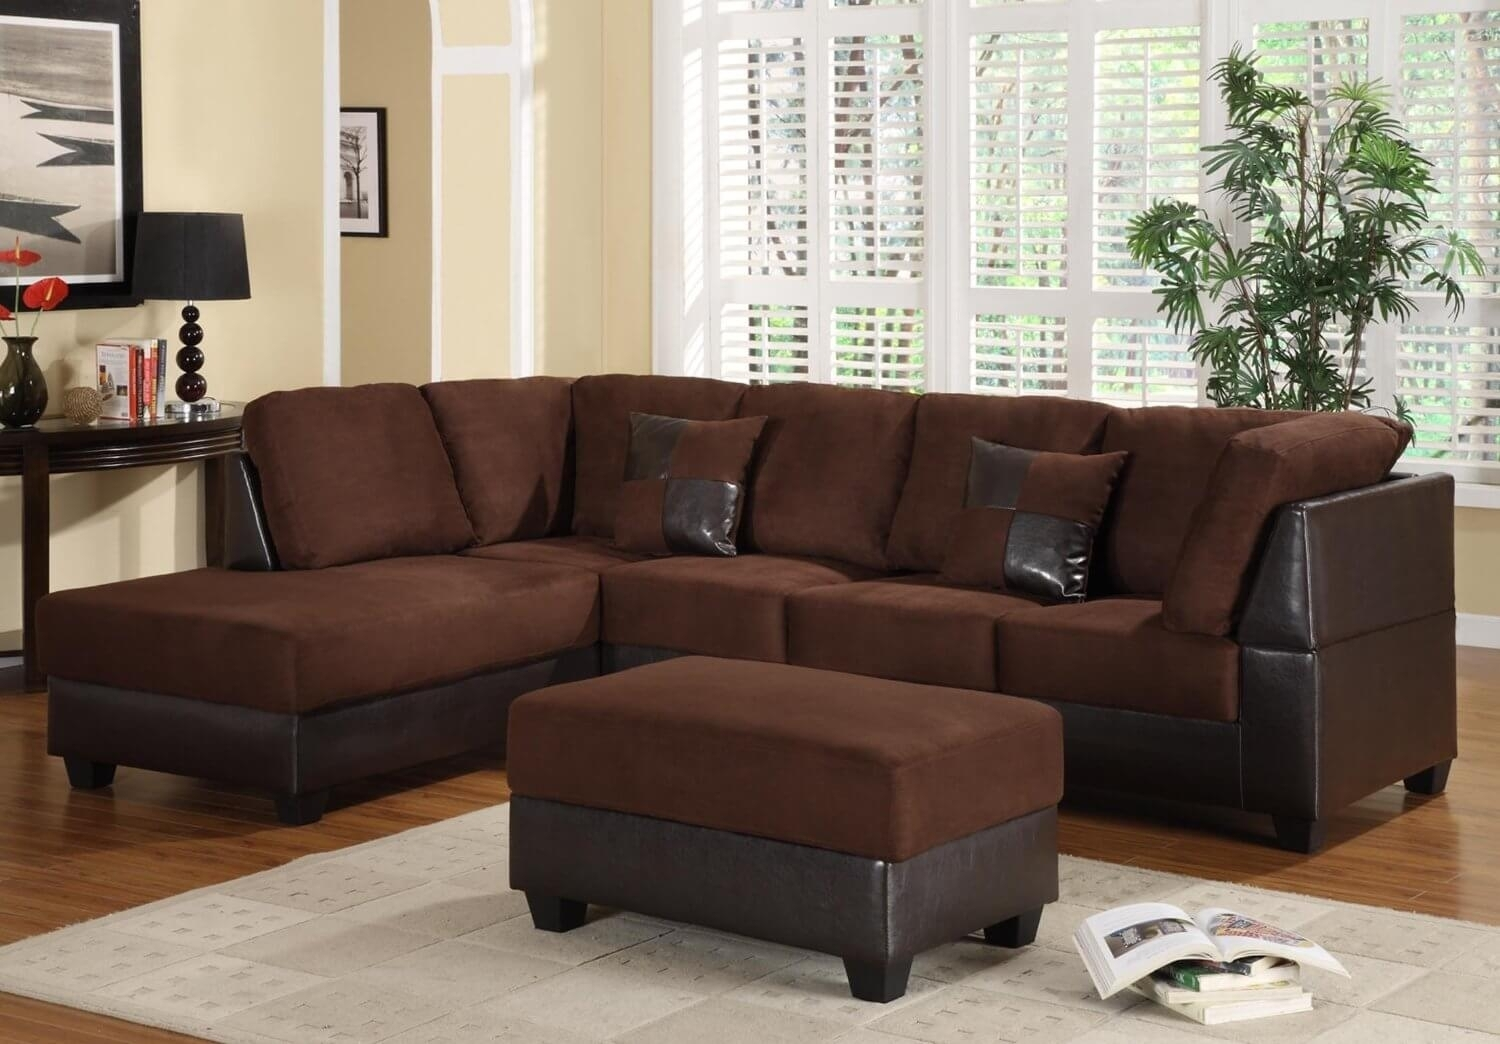 10 ideas of sectional sofas under 1500. Black Bedroom Furniture Sets. Home Design Ideas